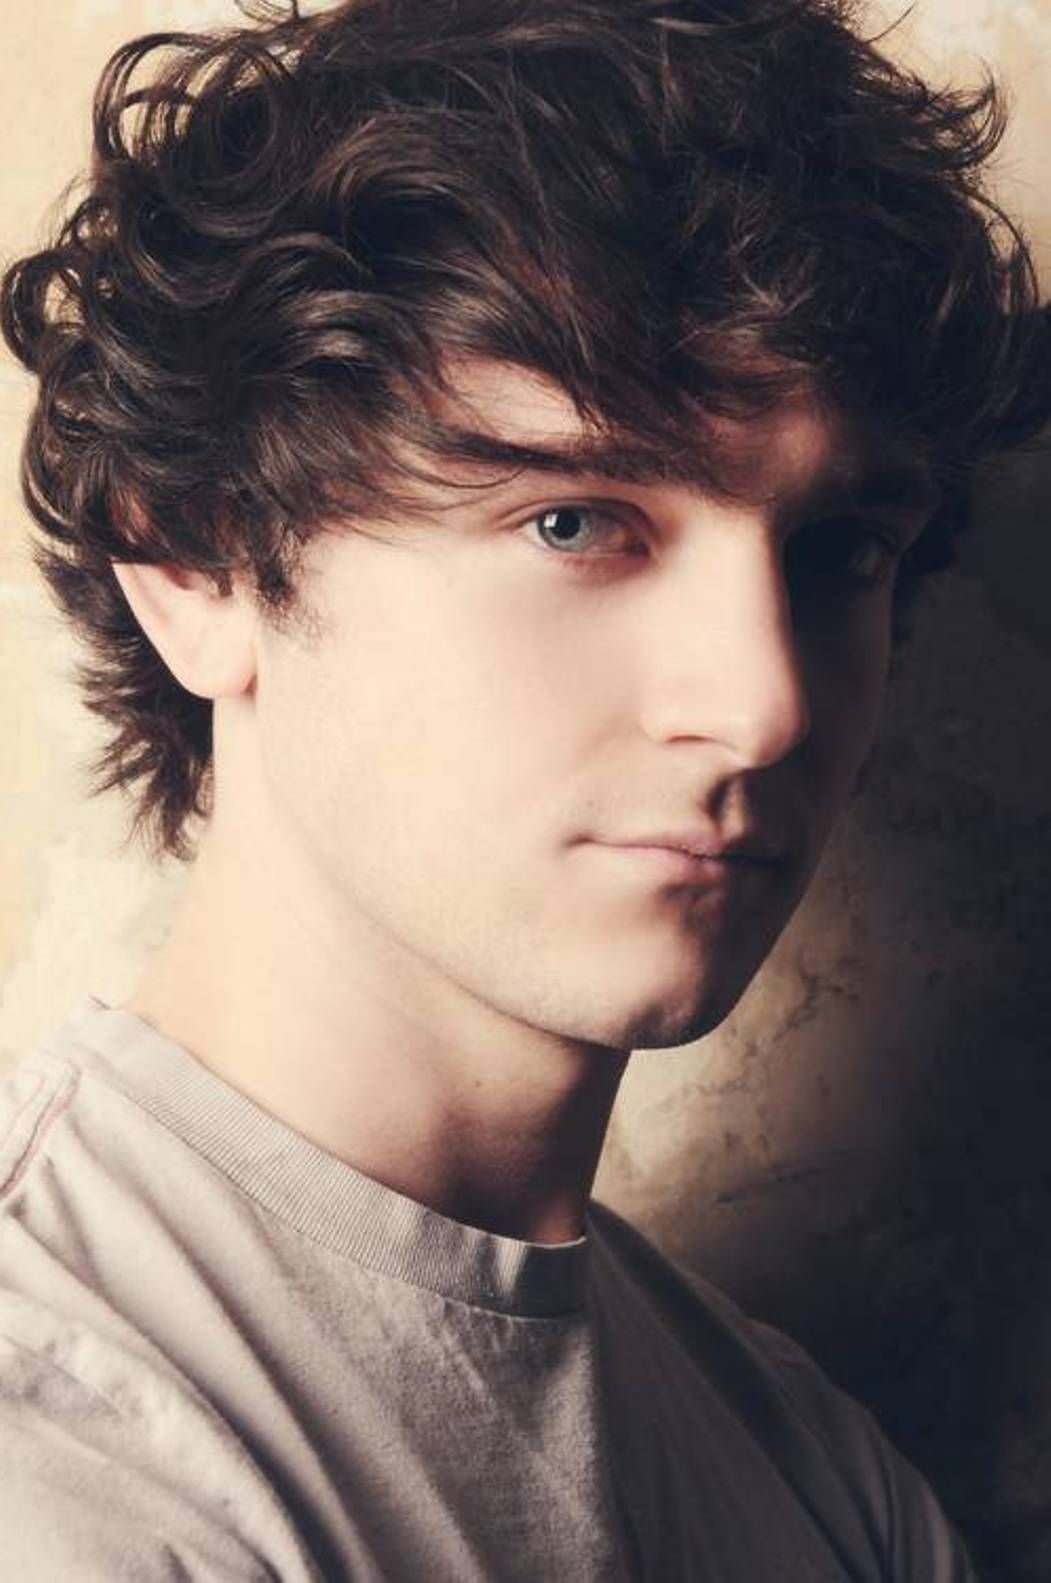 Discover These Long Hairstyles For Men That Are Low Maintenance Brown Hair Boy Mousy Brown Hair Brown Hair Men